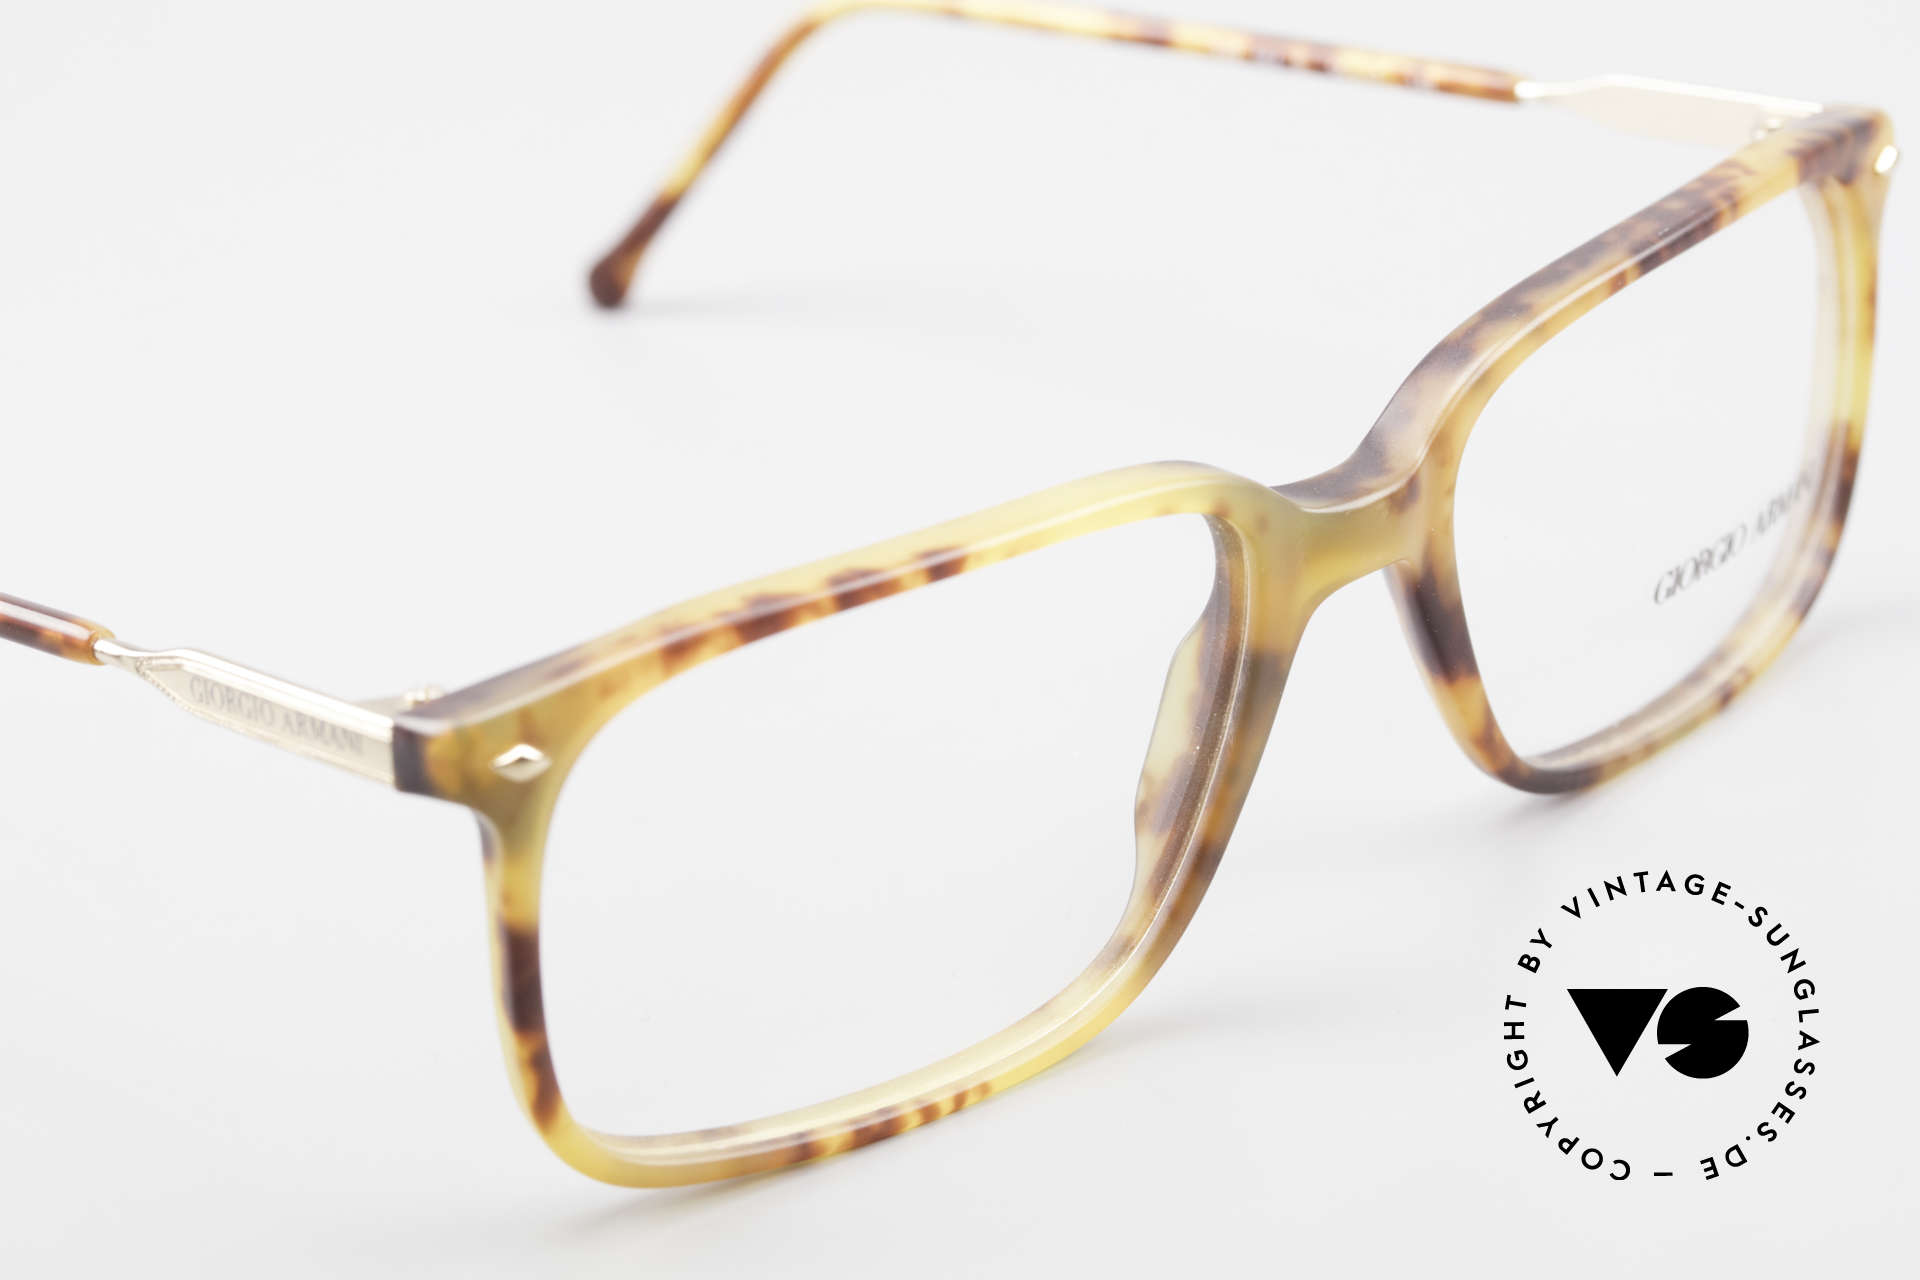 Giorgio Armani 332 True Vintage Eyeglass Frame, NO RETRO frame, but a rare 30 years old ORIGINAL, Made for Men